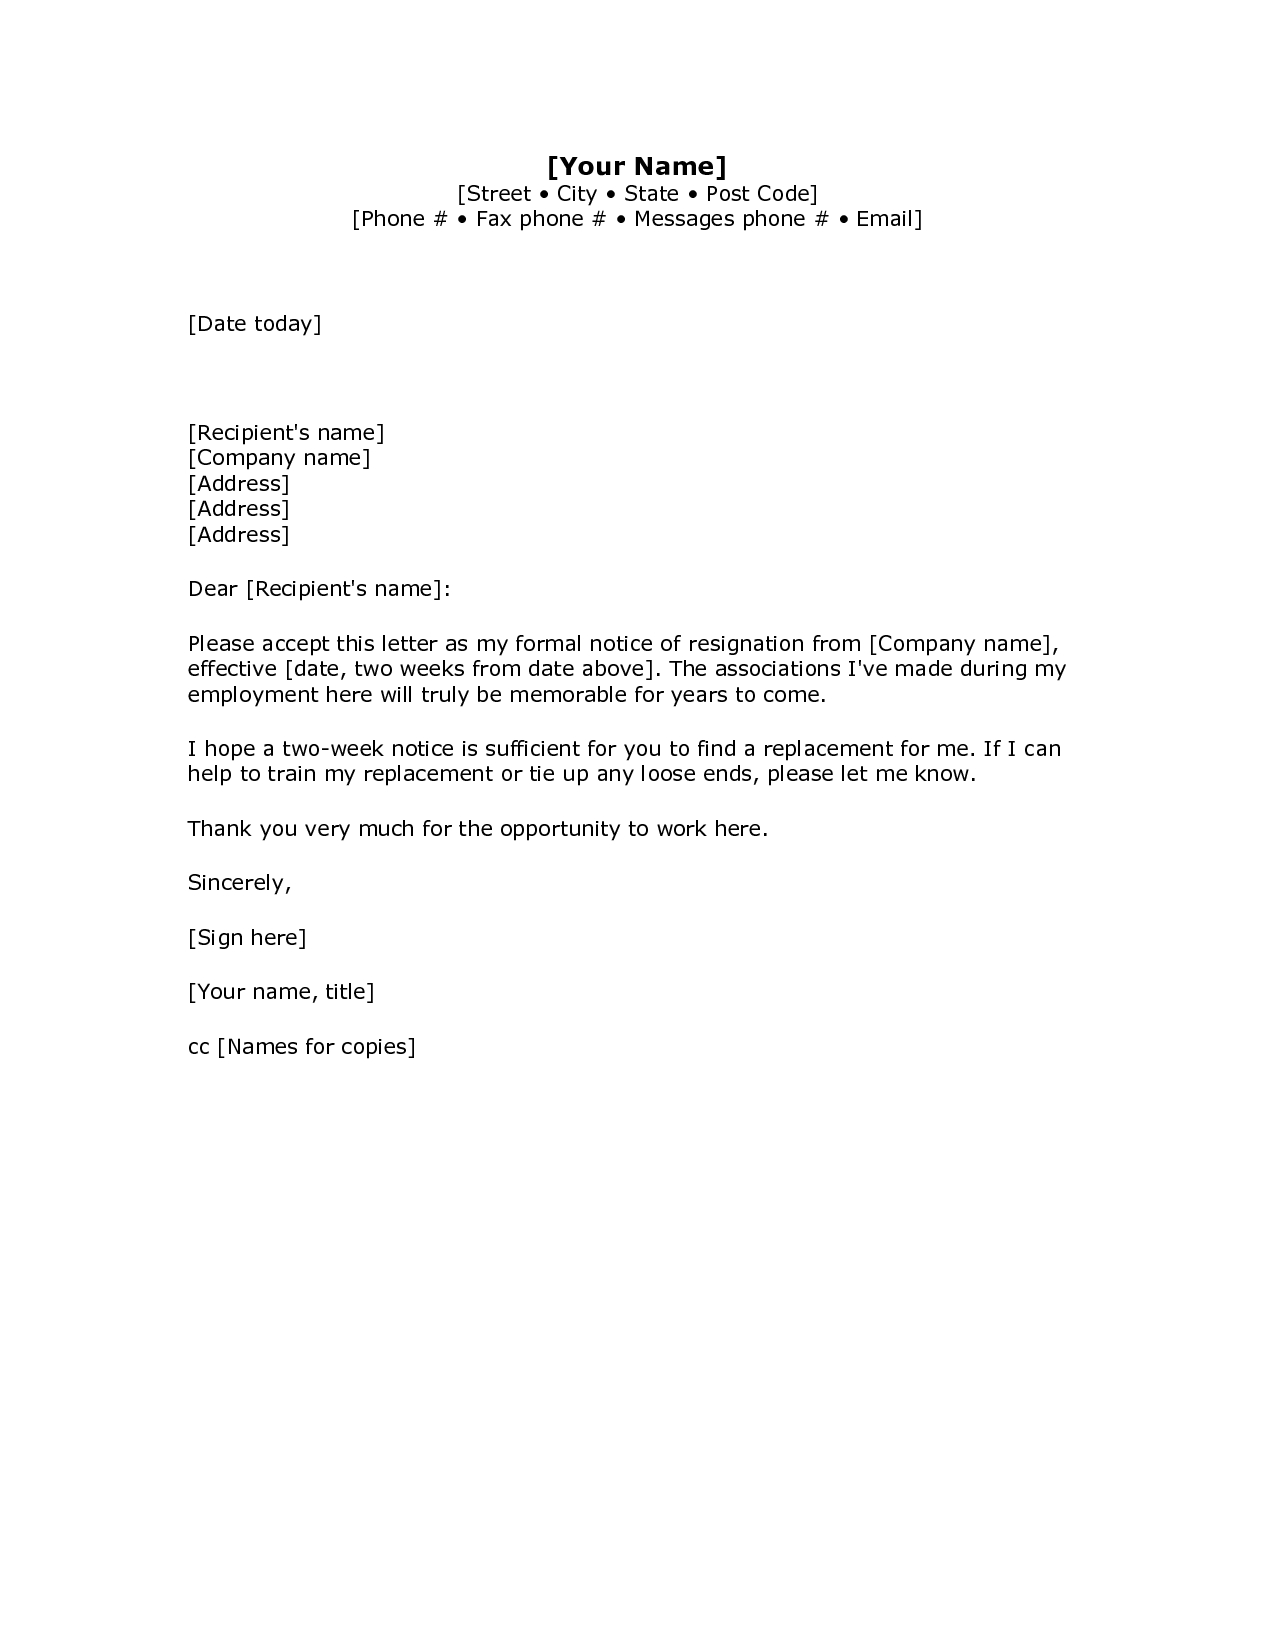 write a letter to your future self template example-2 Weeks Notice Letter Resignation Letter Week Notice Words HDWriting A Letter Resignation Email Letter Sample 11-b